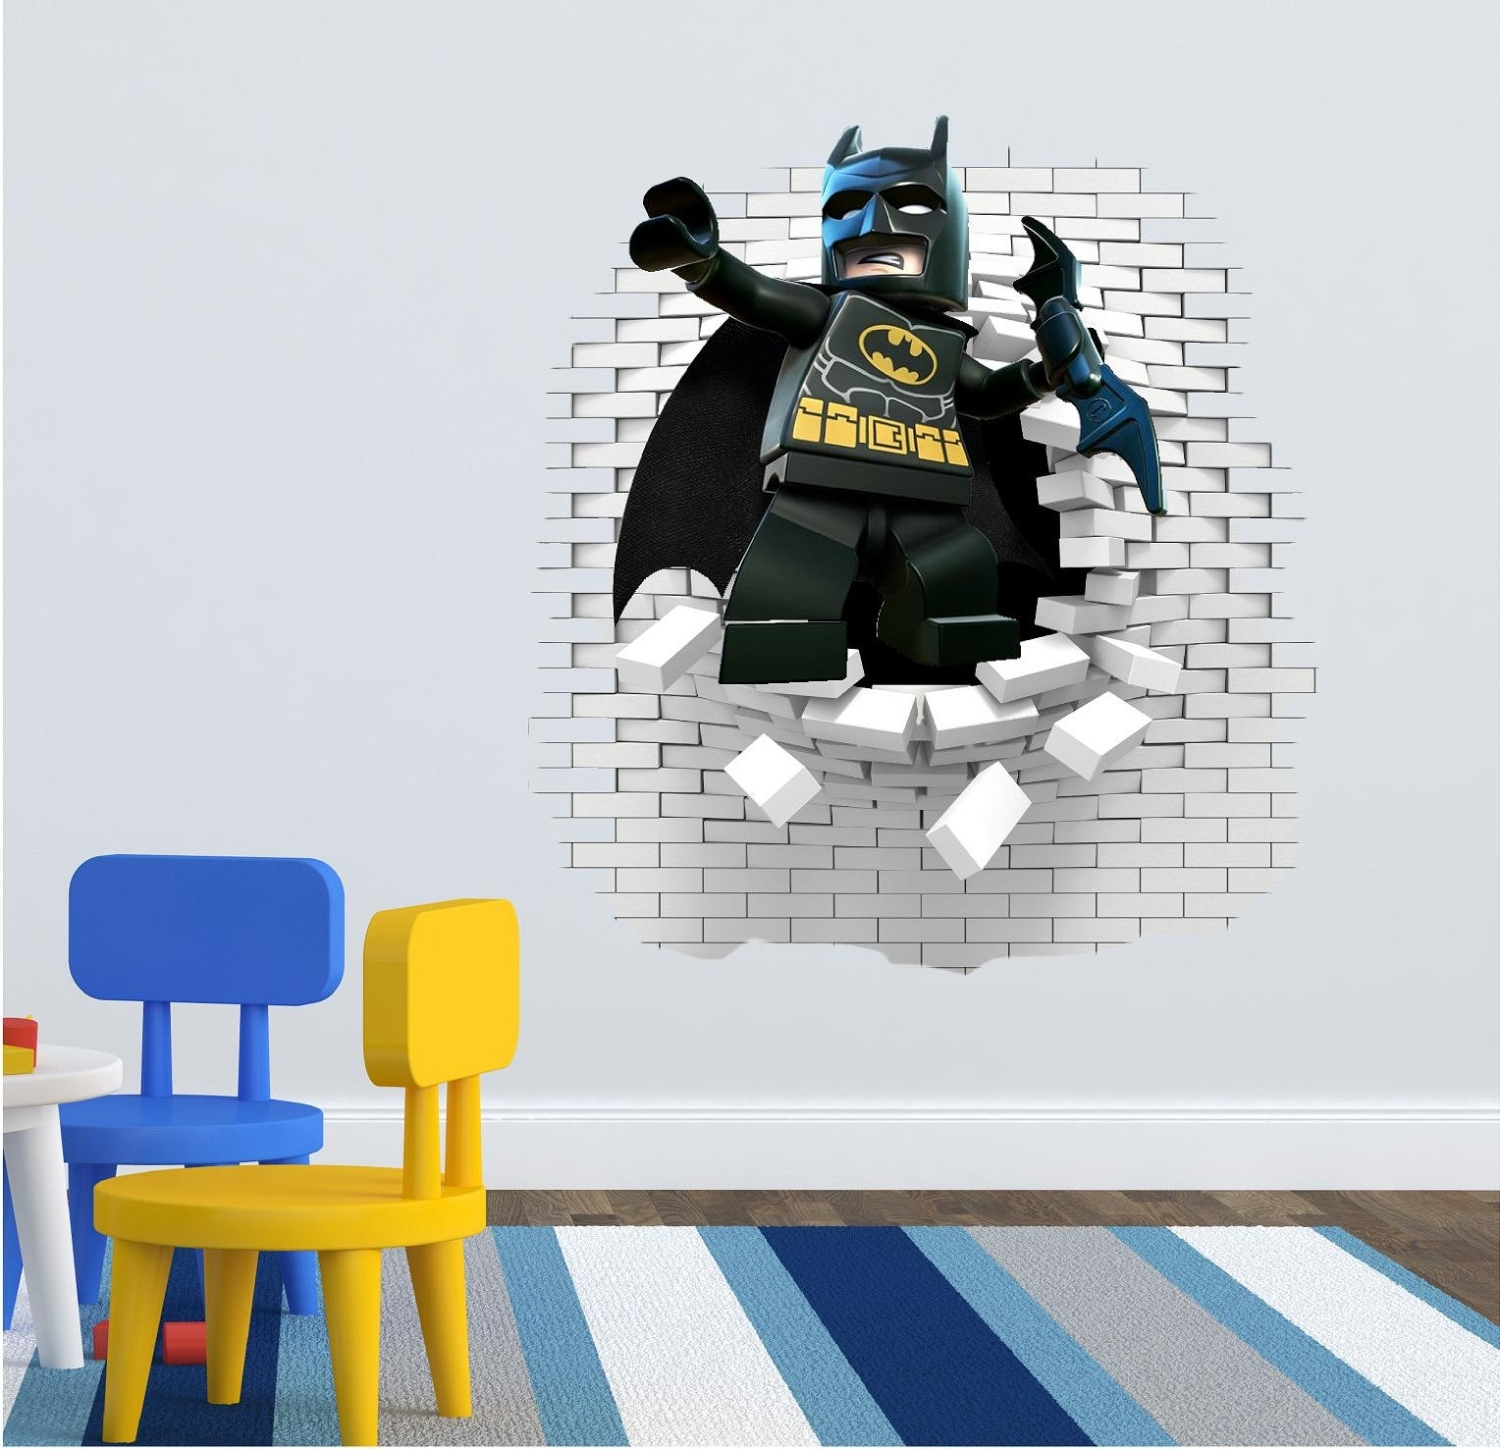 Superhero Wall Art Stickers Throughout Most Recent 3D Lego Batman Wall Decal Great For The Kids Room (View 13 of 15)